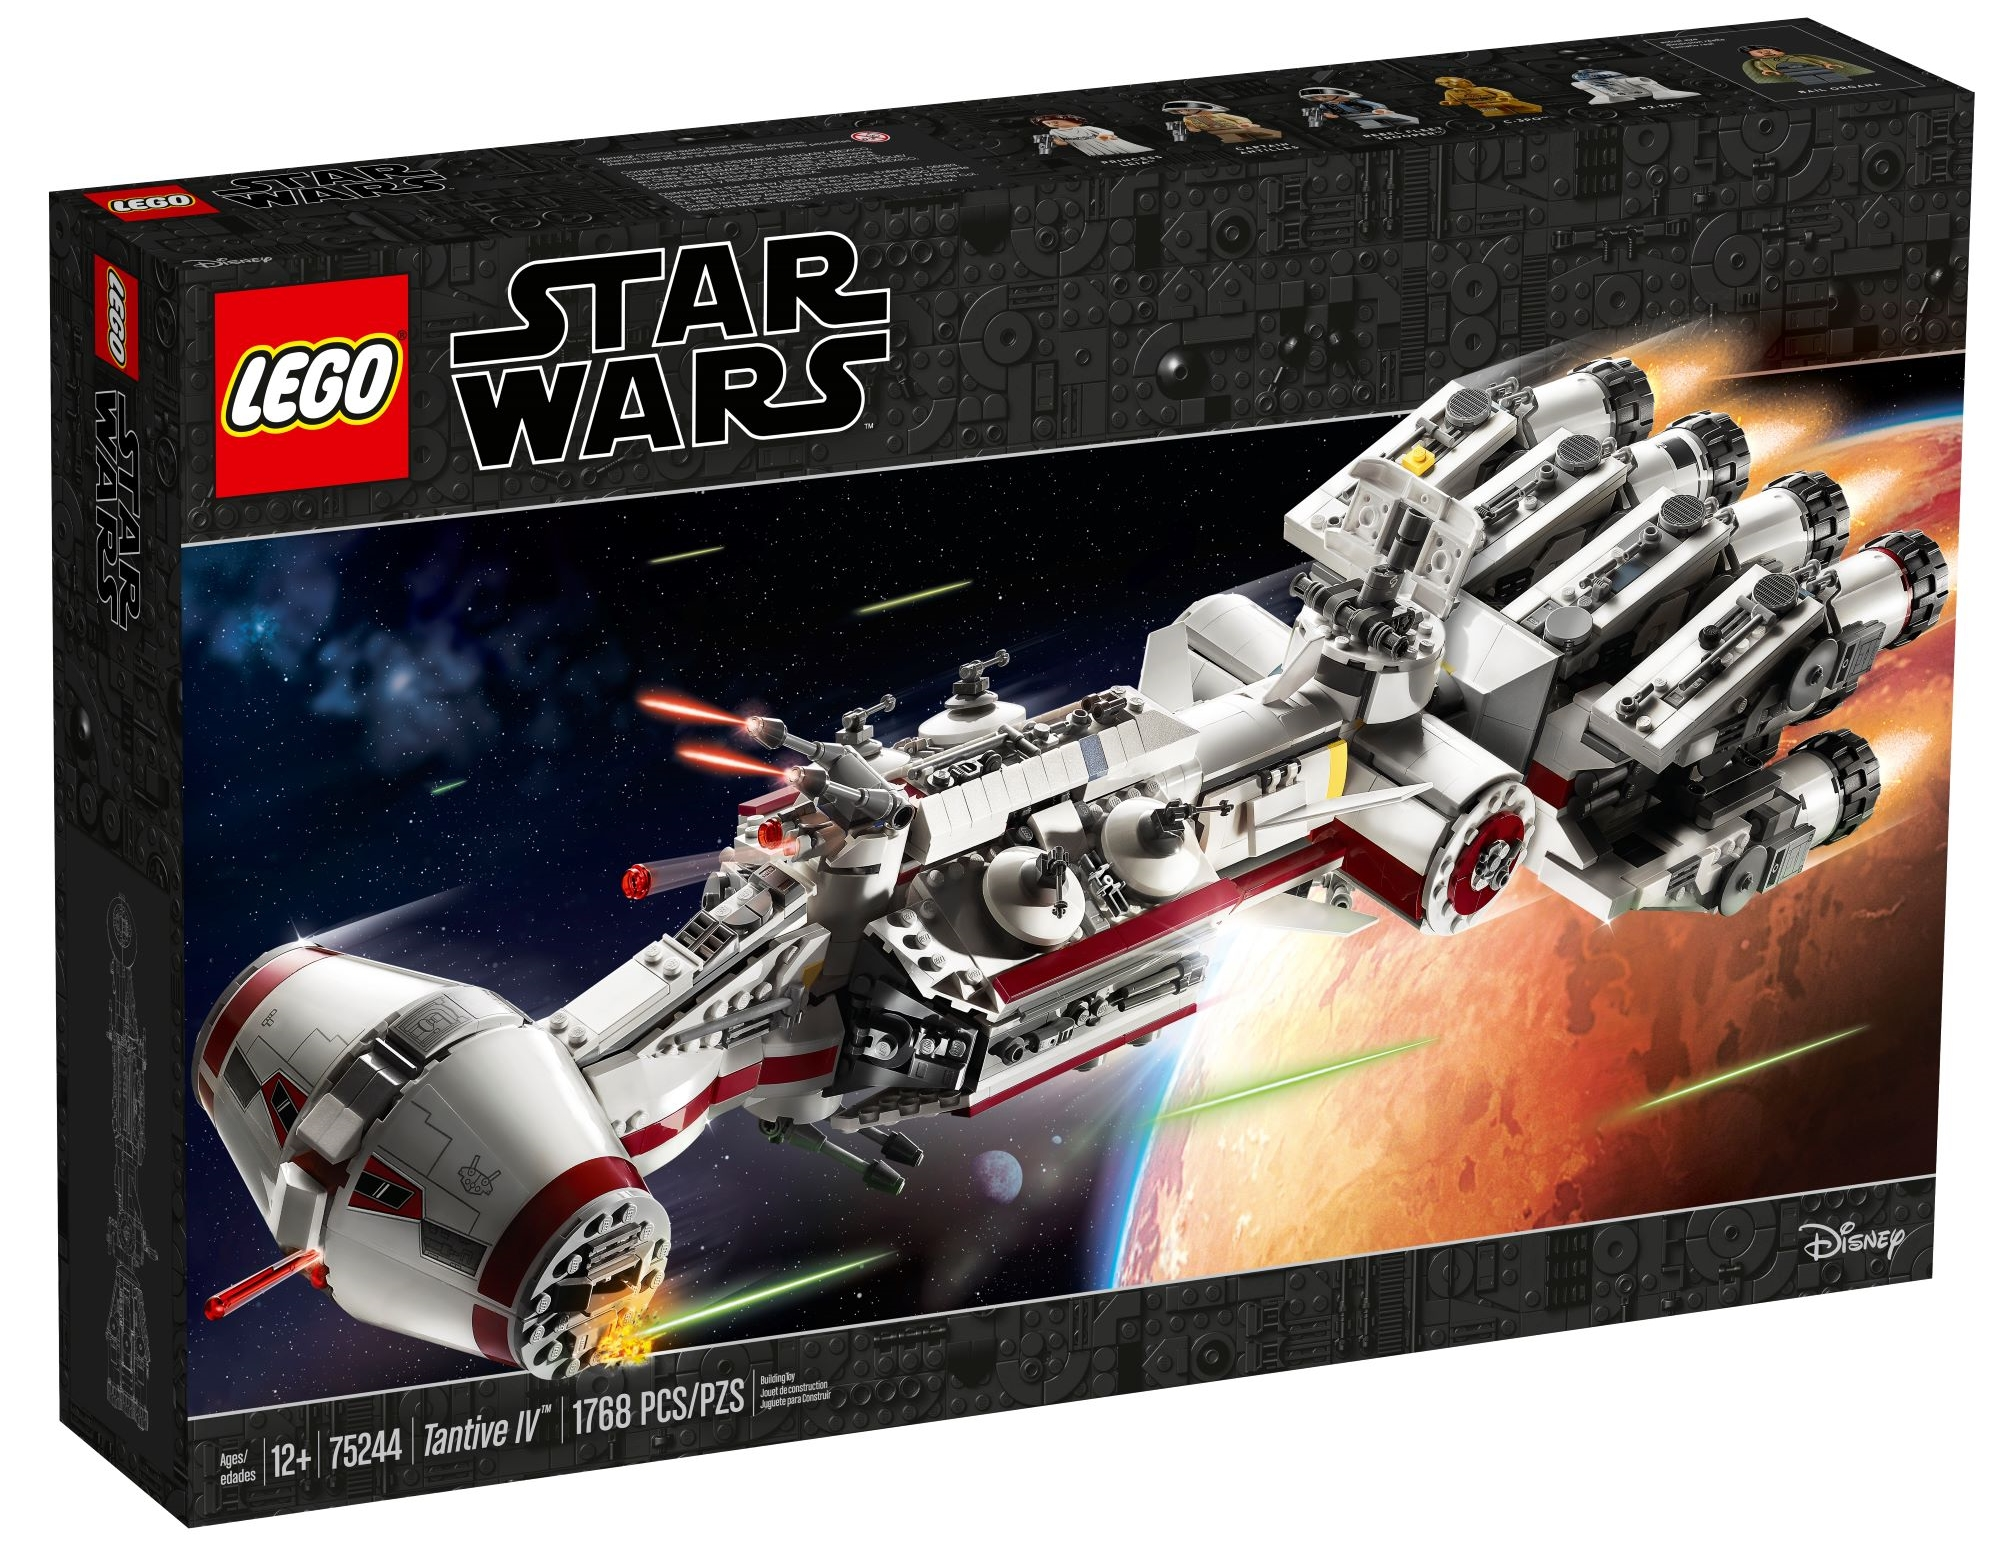 Lego Star Wars celebrates 20th anniversary with Tantive IV special edition set